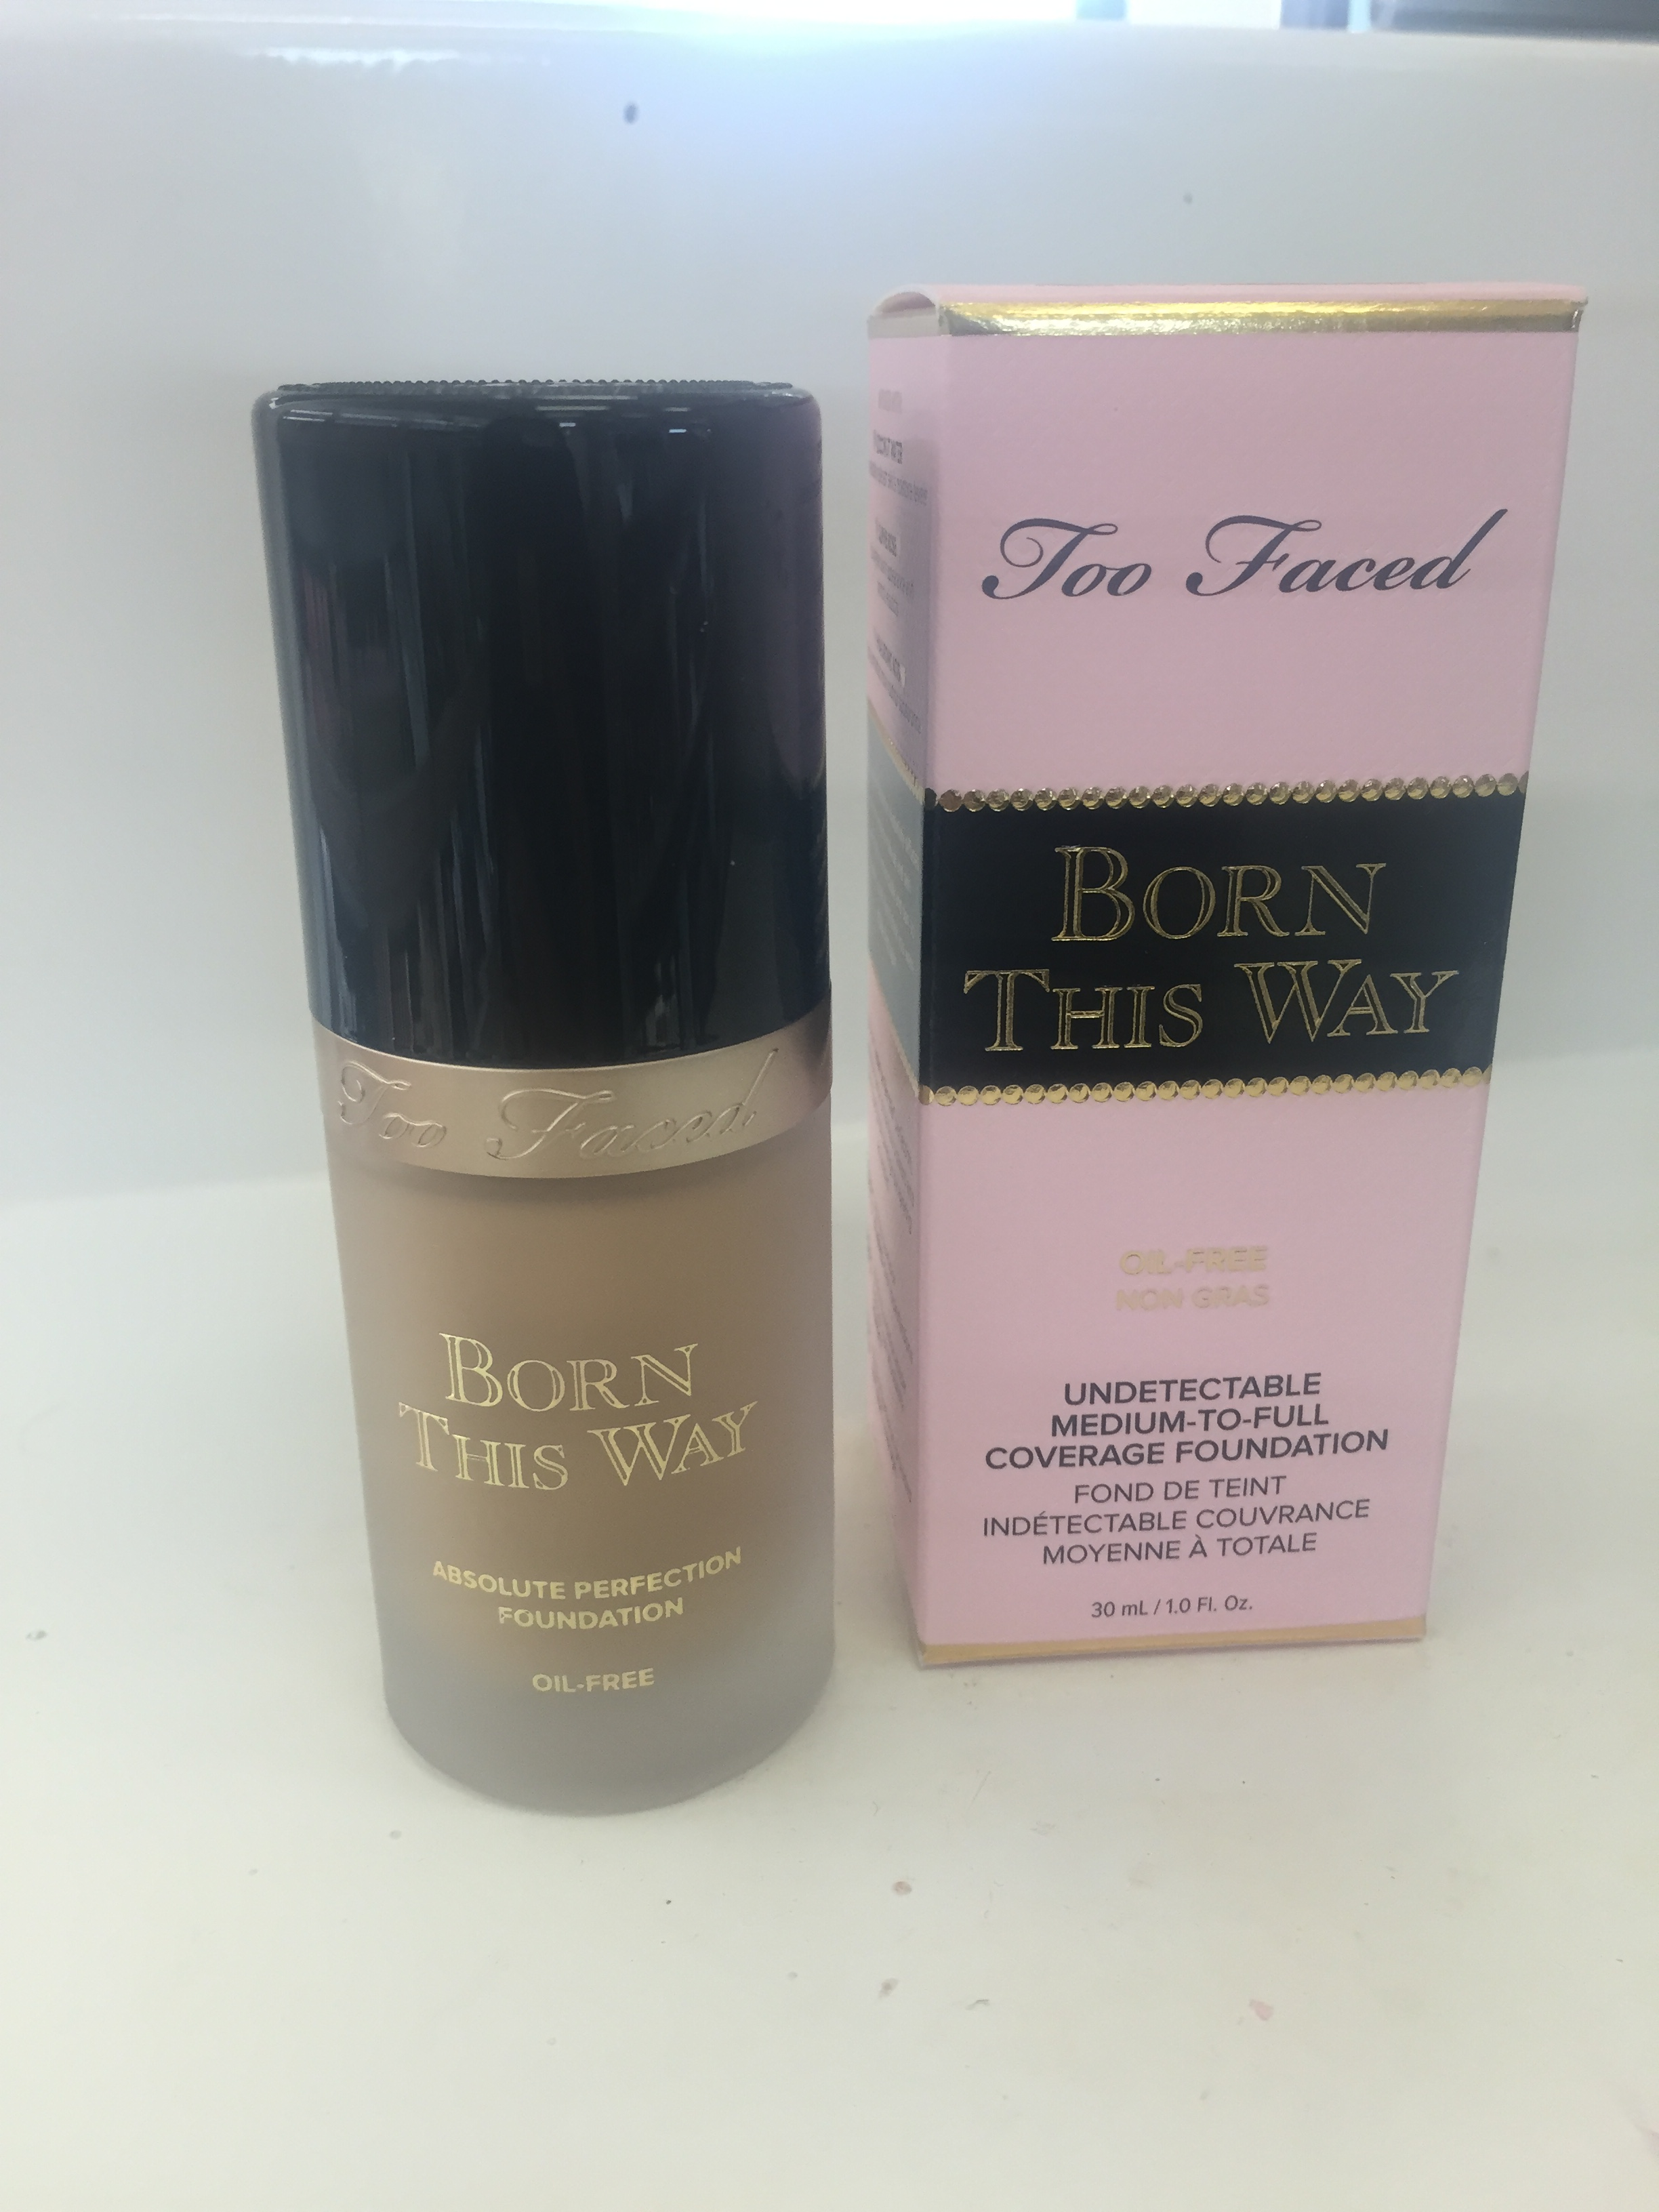 two faced foundation